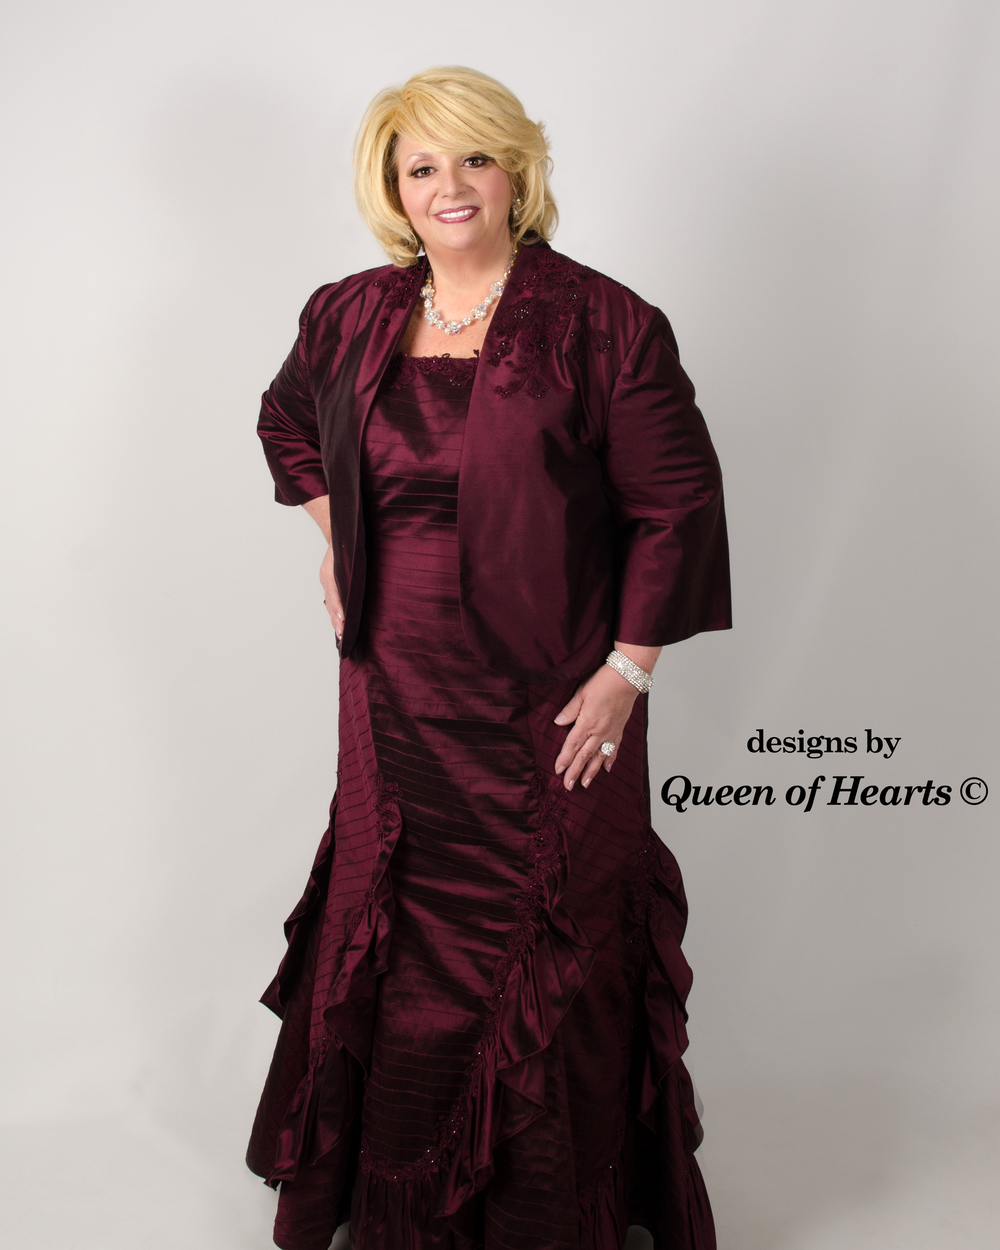 QueenofHearts-37 copy.jpg